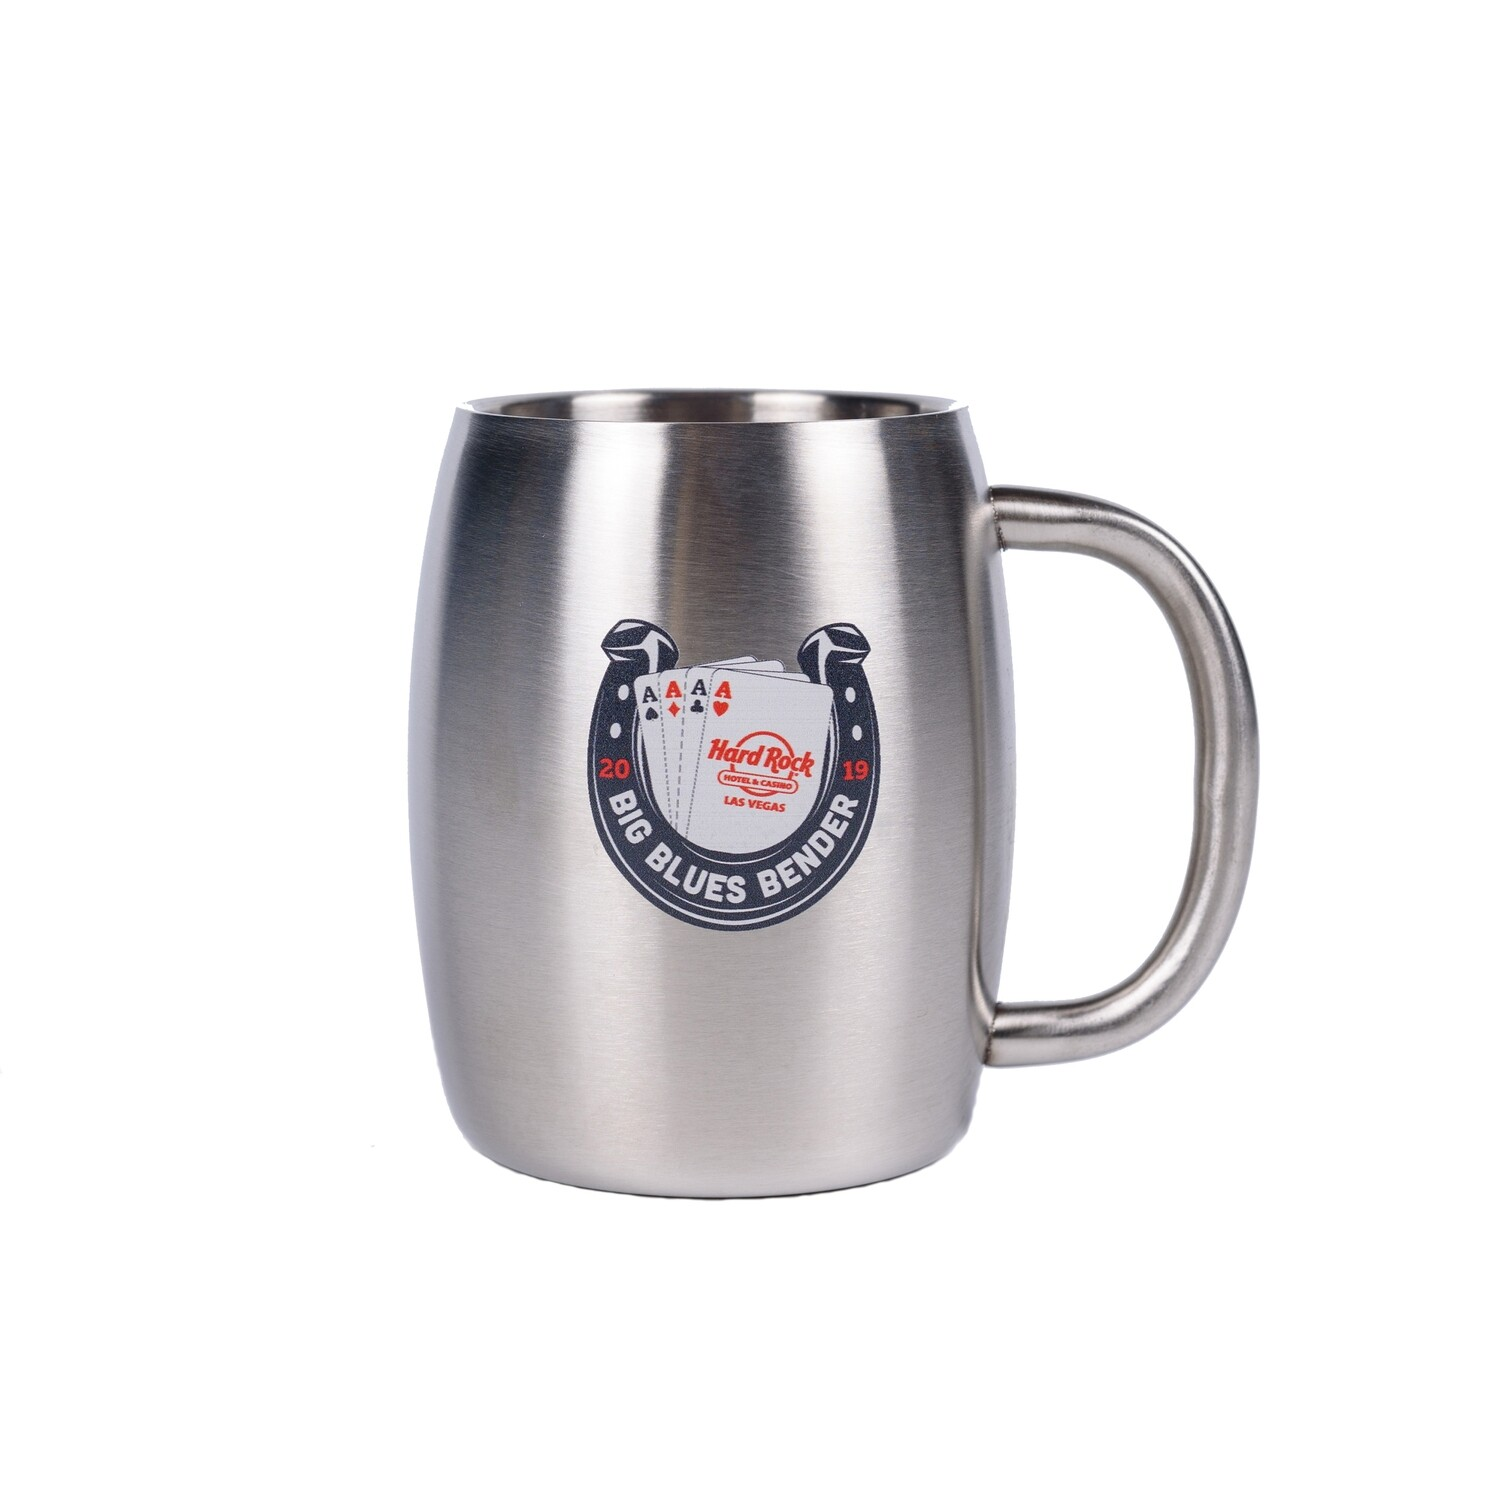 2019 Stainless Steel Mug